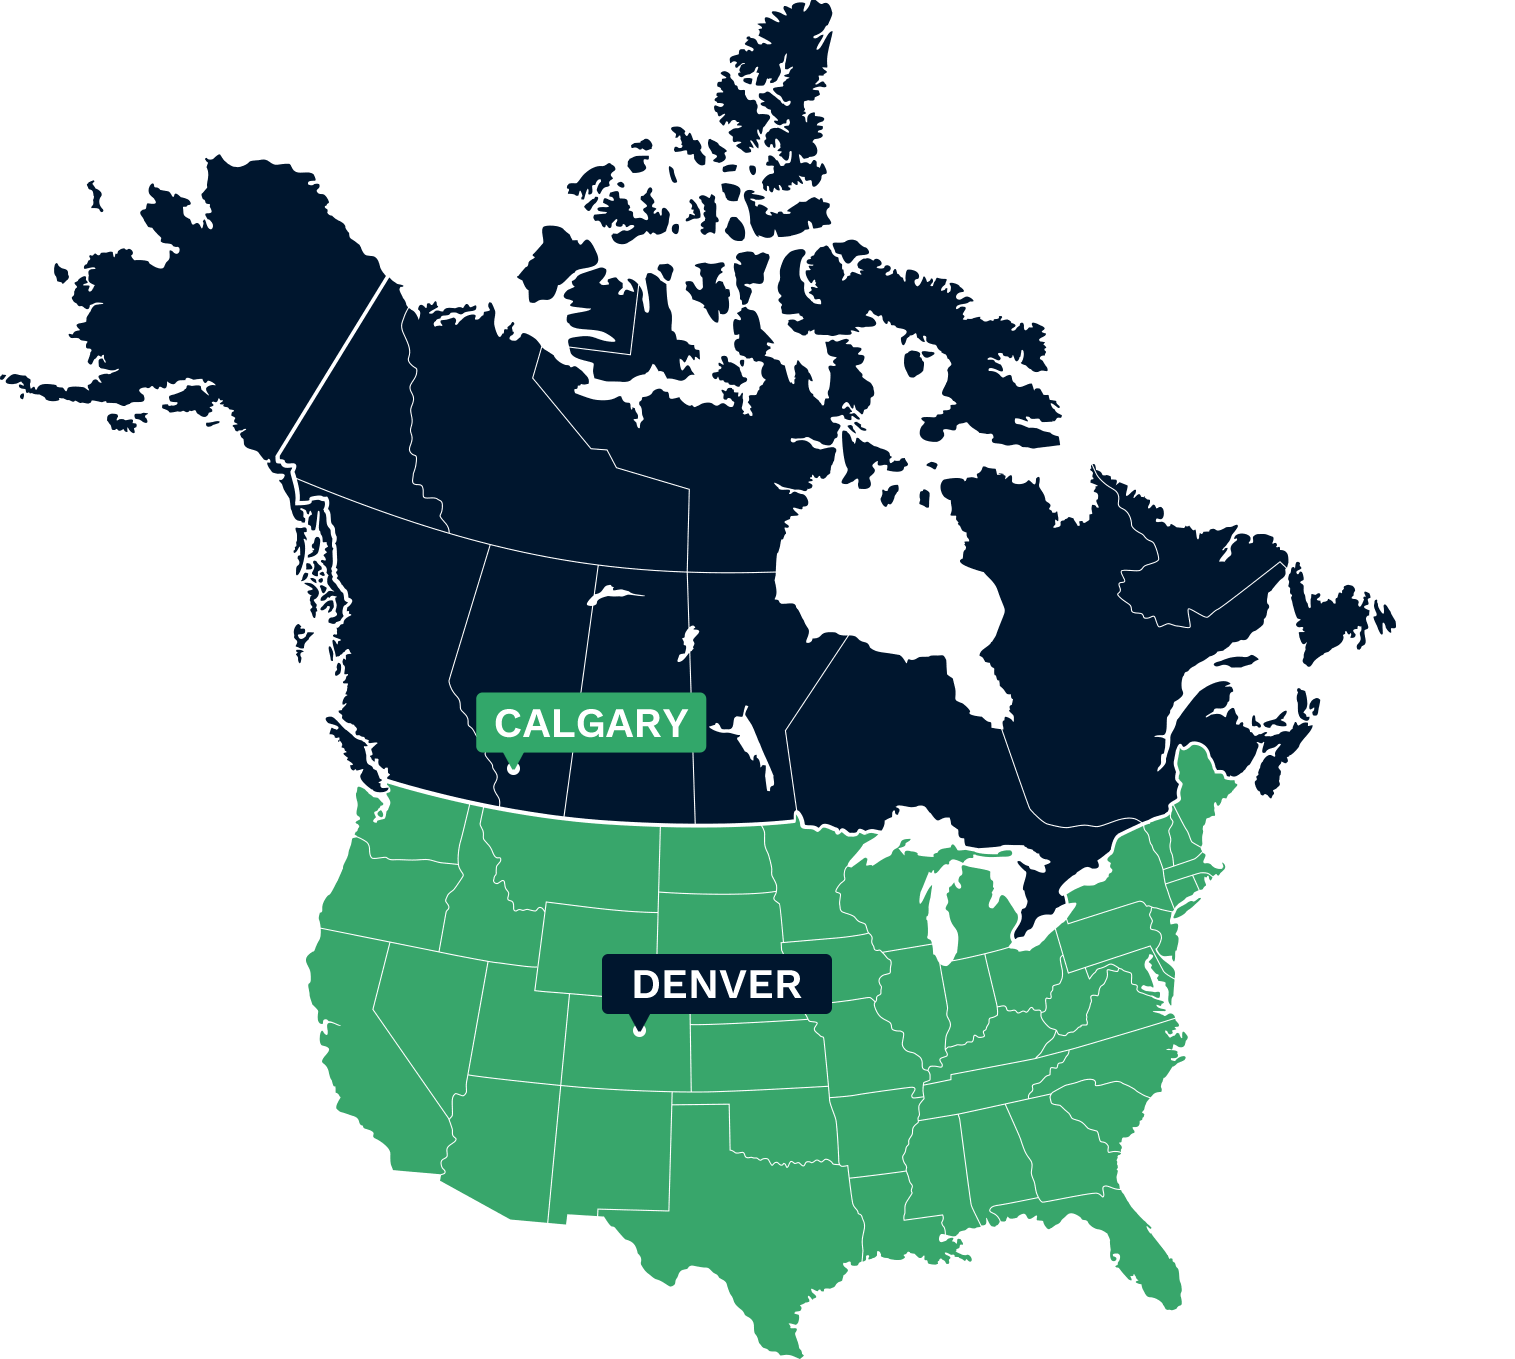 Calgary Canada Map Of North America.Company